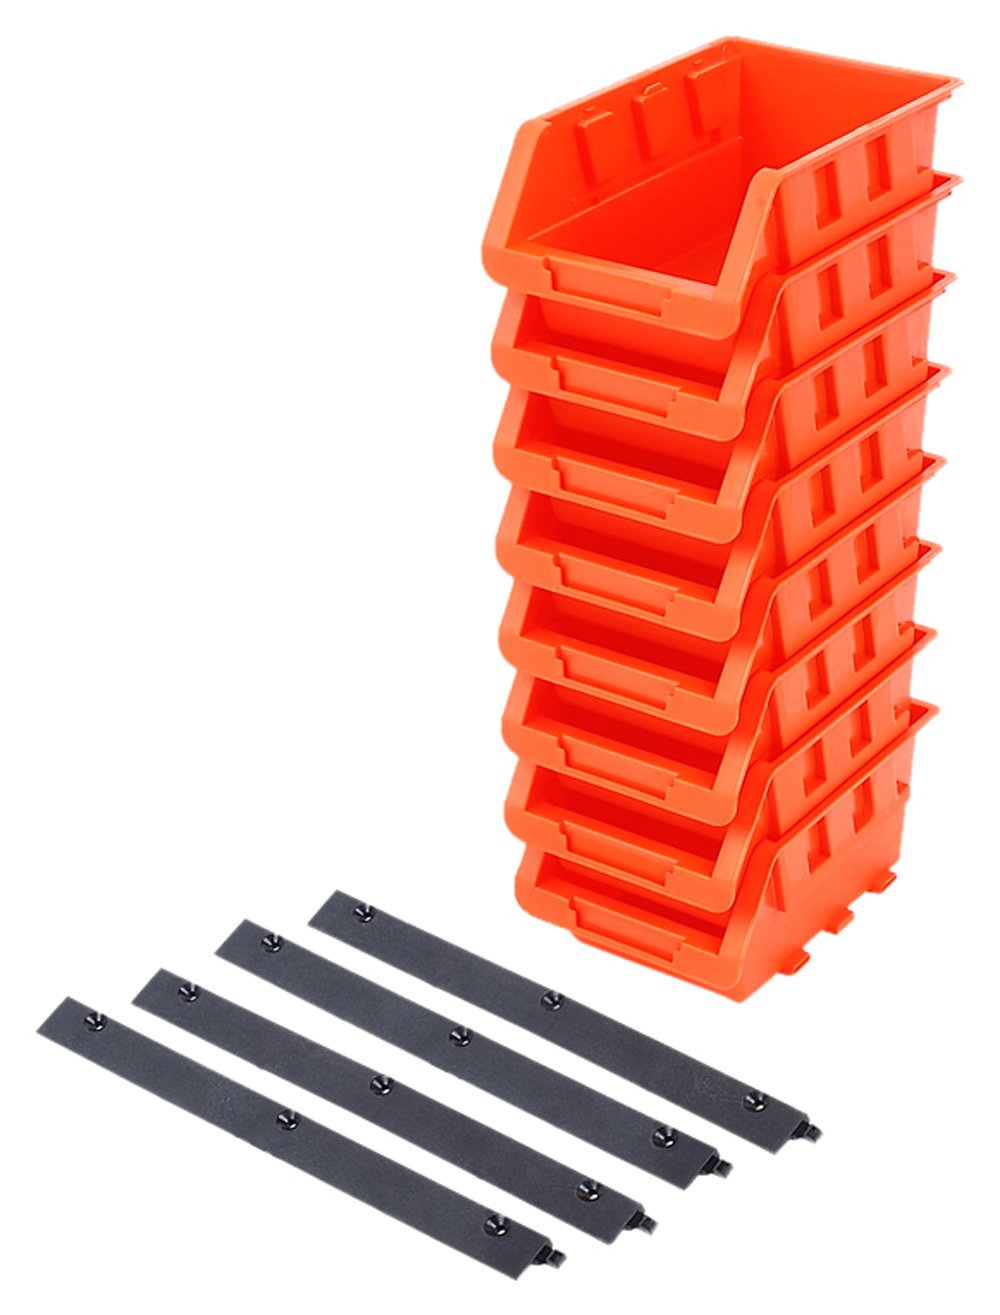 Tactix 320604 Plastic Tray Bin Set, Black/Orange